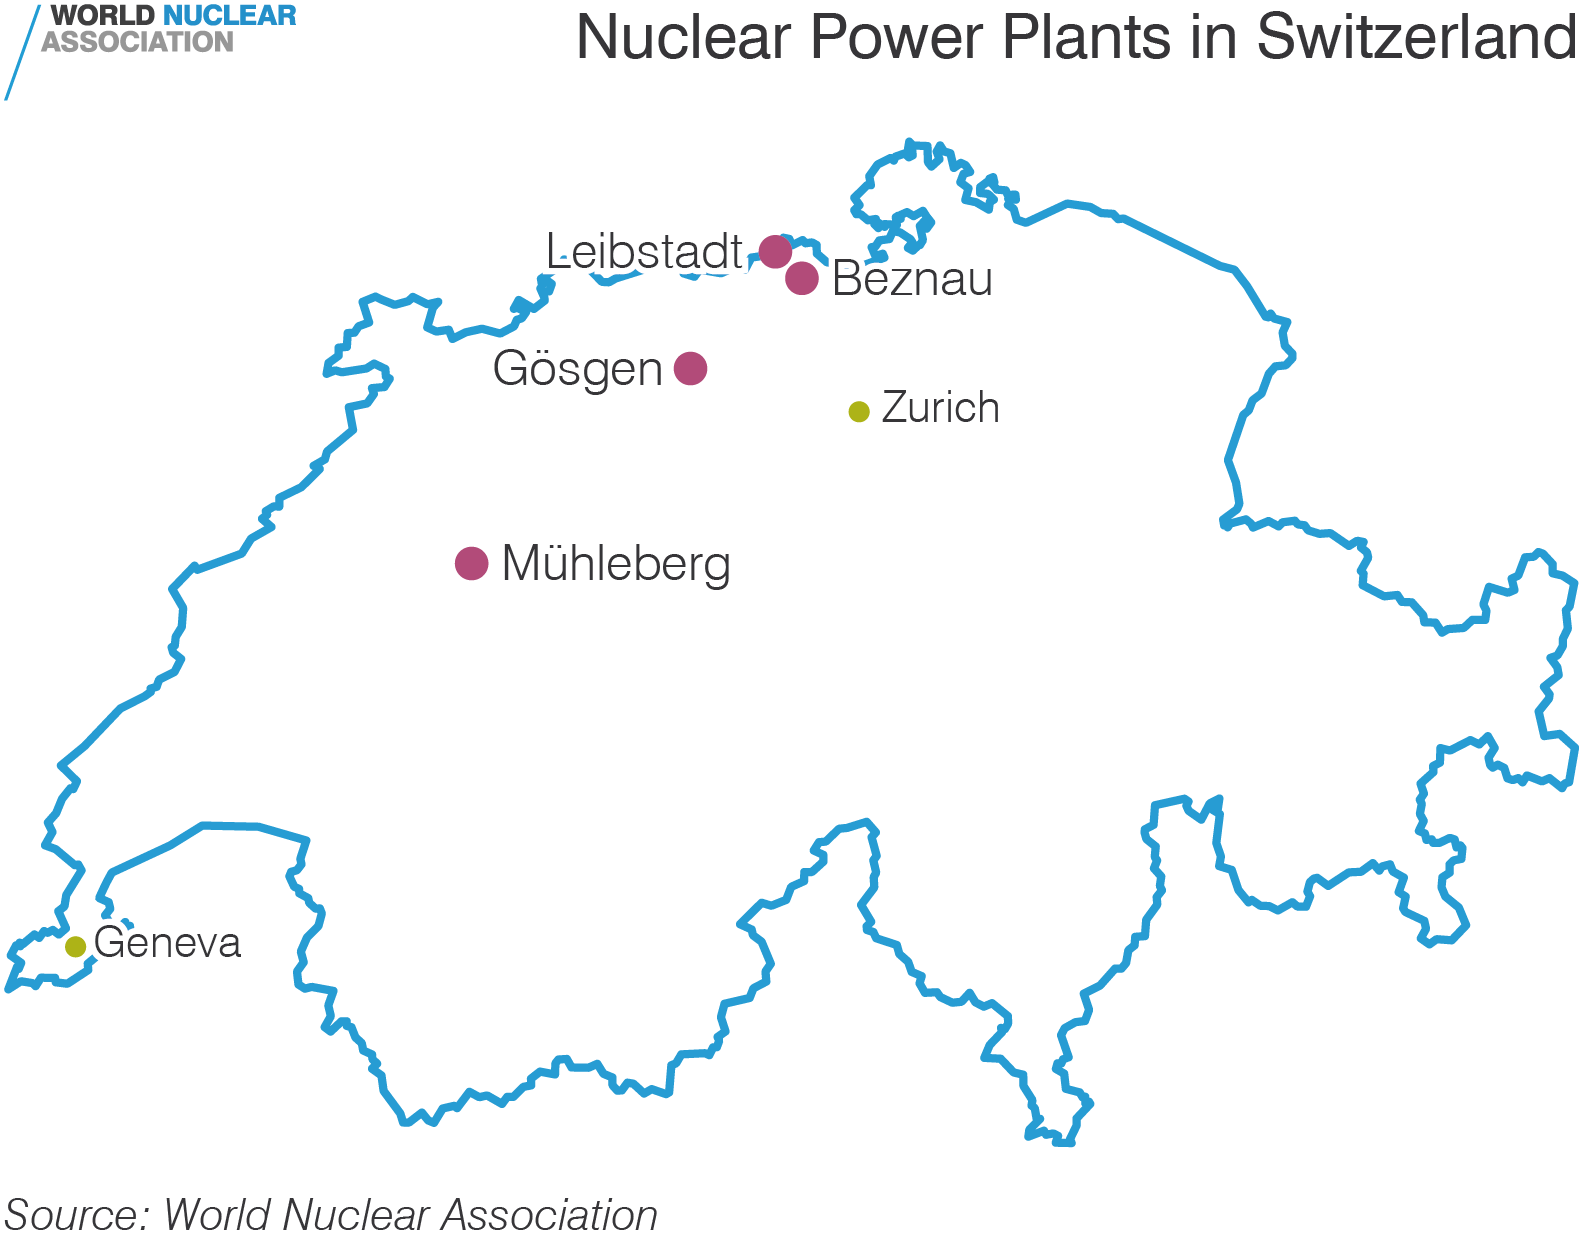 Nuclear Power Plants in Switzerland